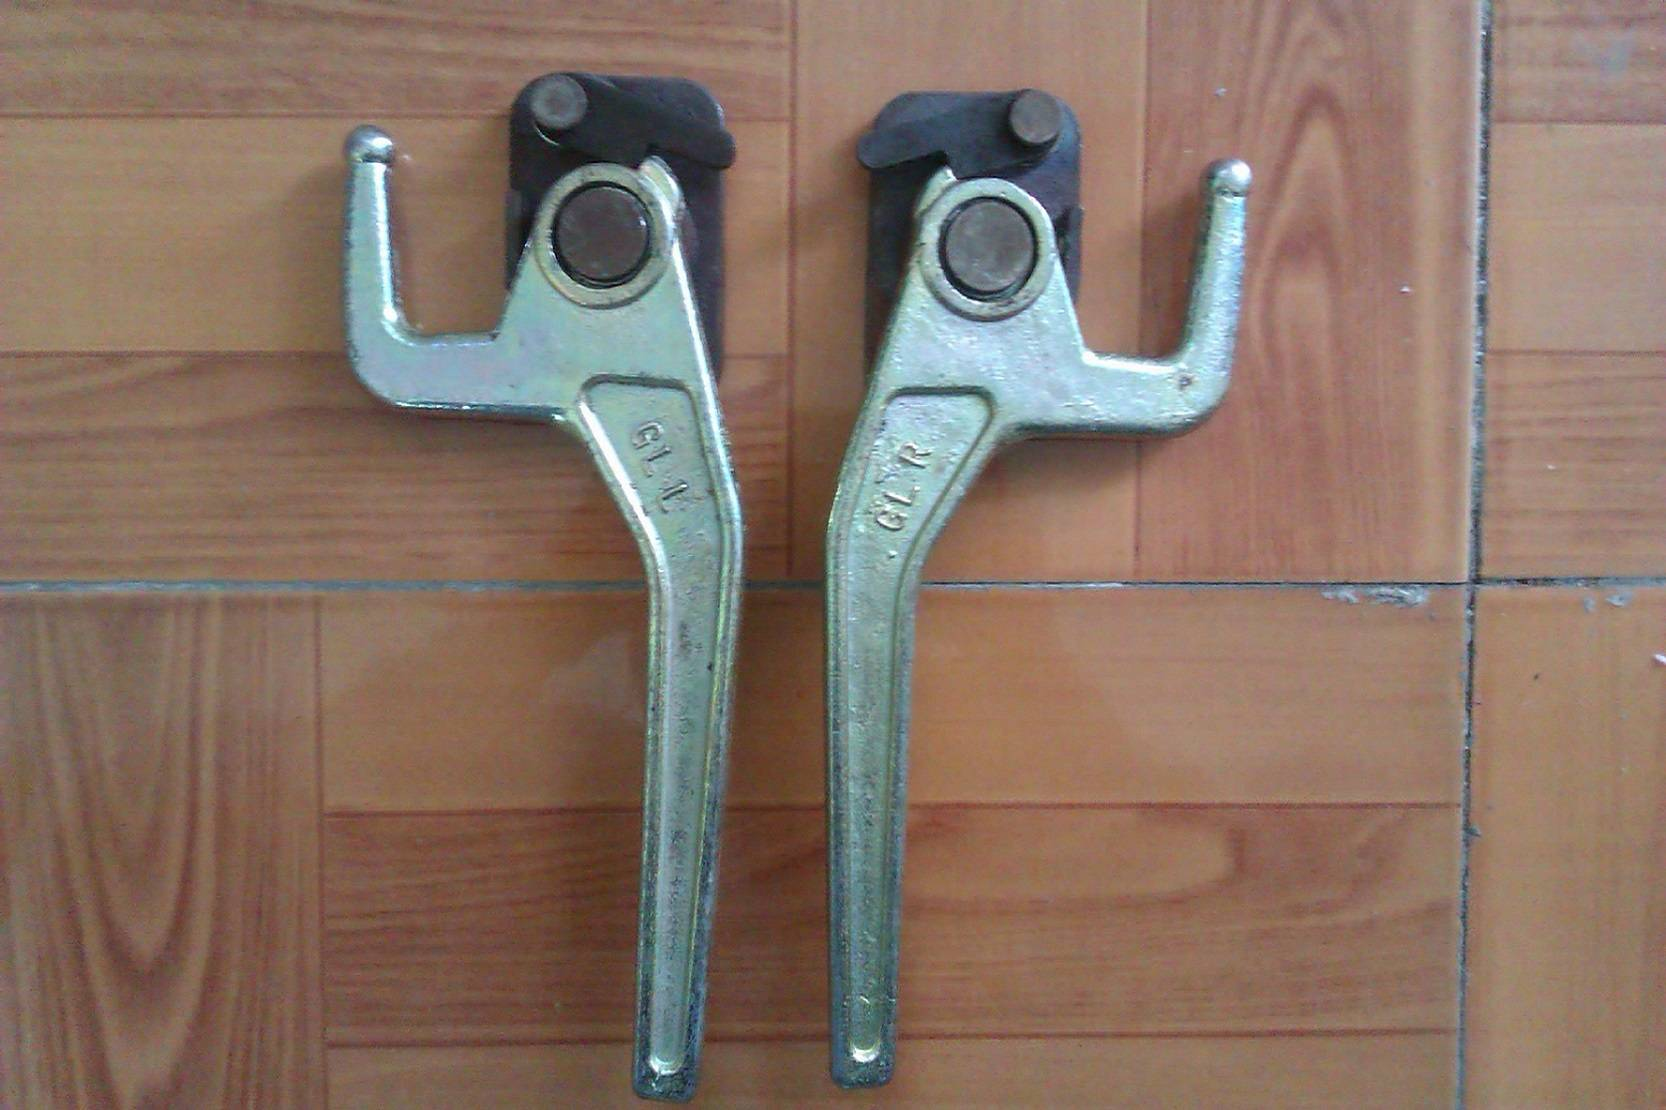 Truck Body Parts, Trailer Parts, Body Fittings,Spring Latch Lock, Truck Buckles Toggle Fastener GL-1